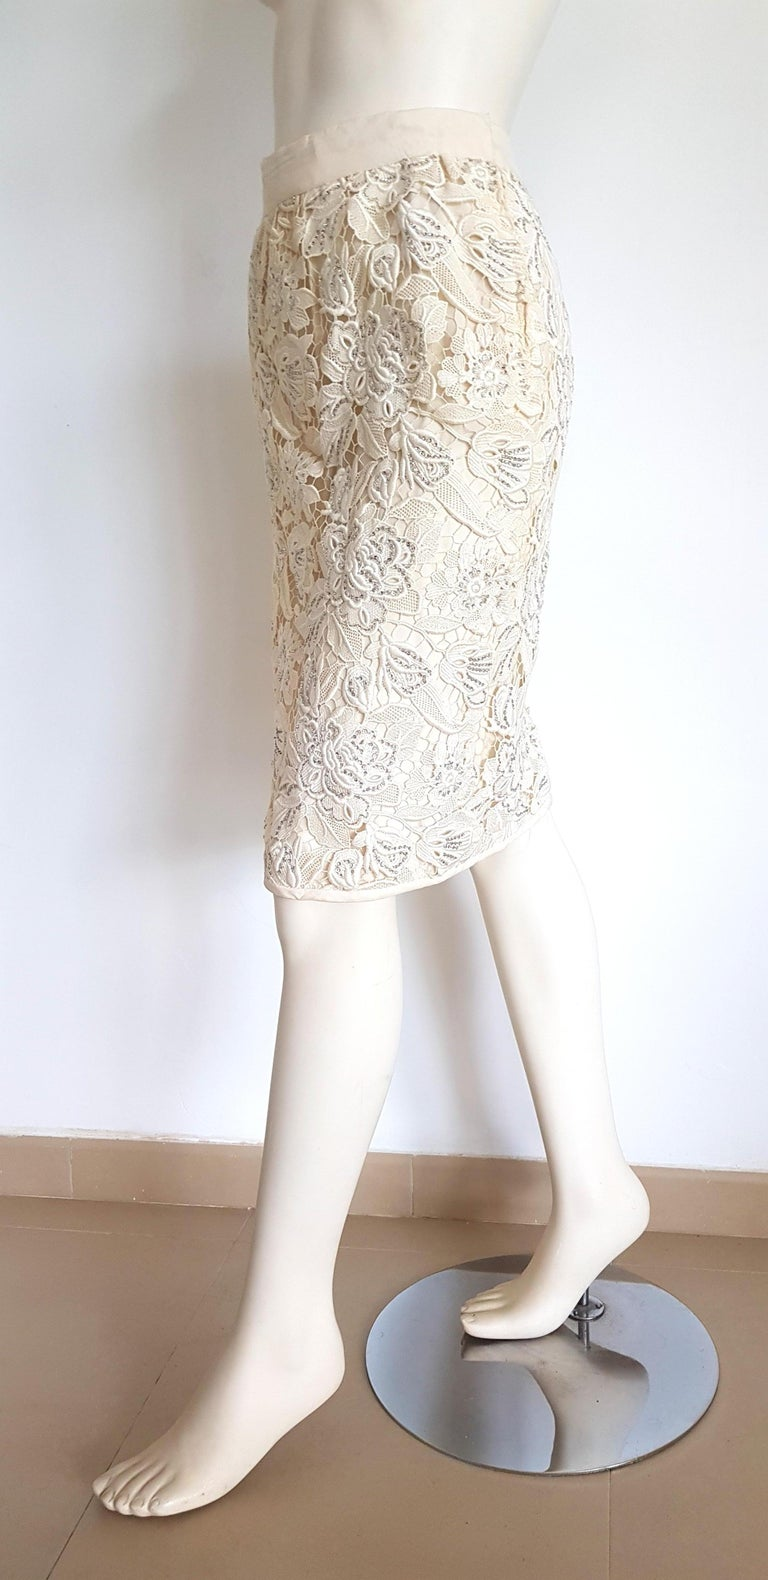 VALENTINO Haute Couture Swarovski Diamonds Embroidered Lace Beige Suit - Unworn For Sale 3